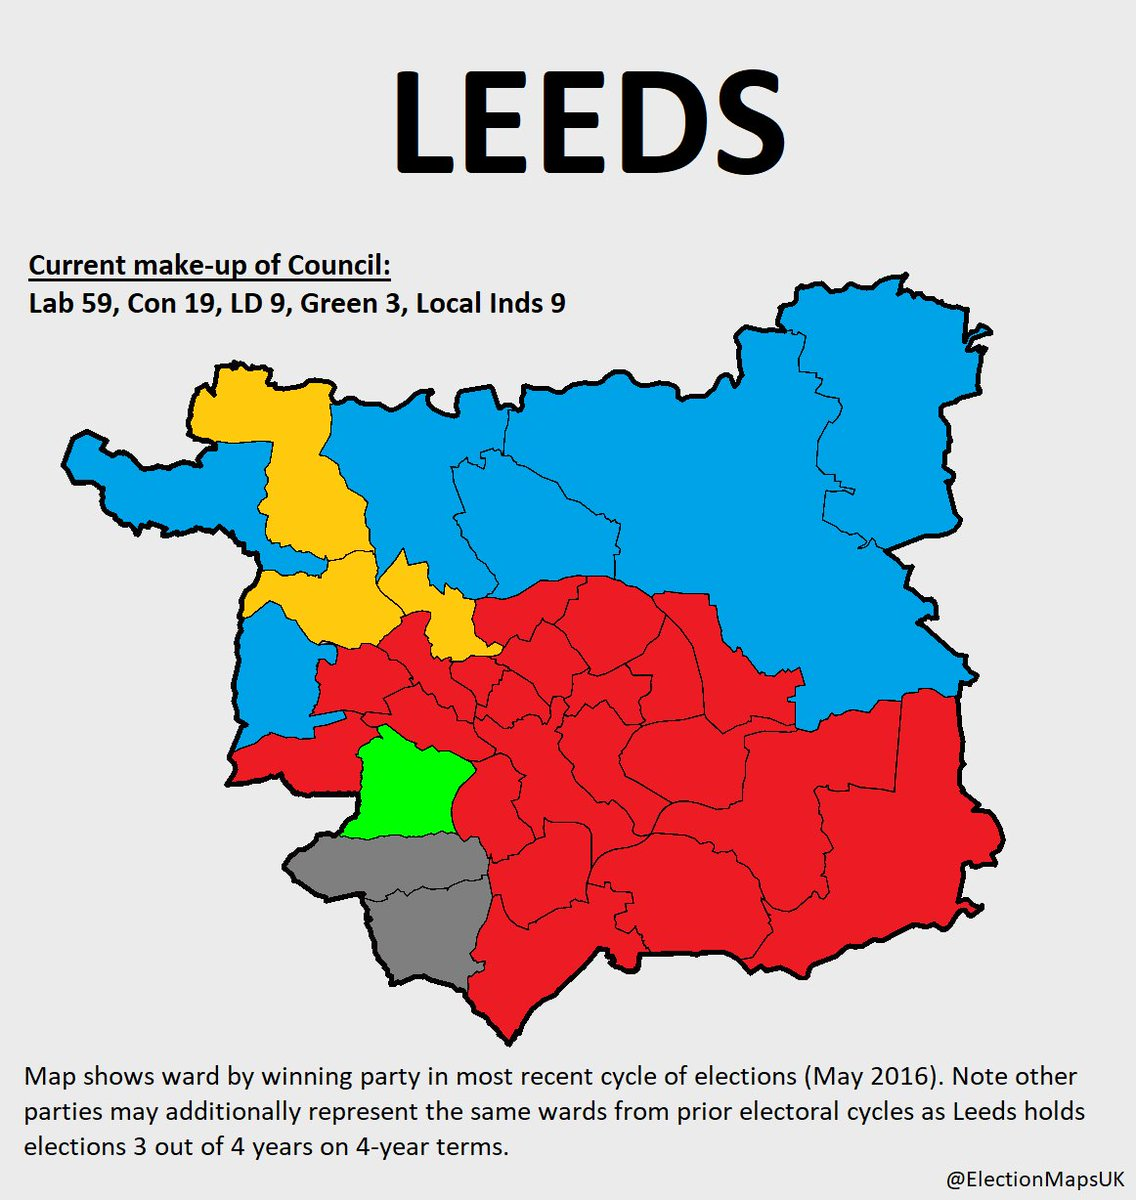 Election Maps UK on Twitter Heres Labourcontrolled Leeds which